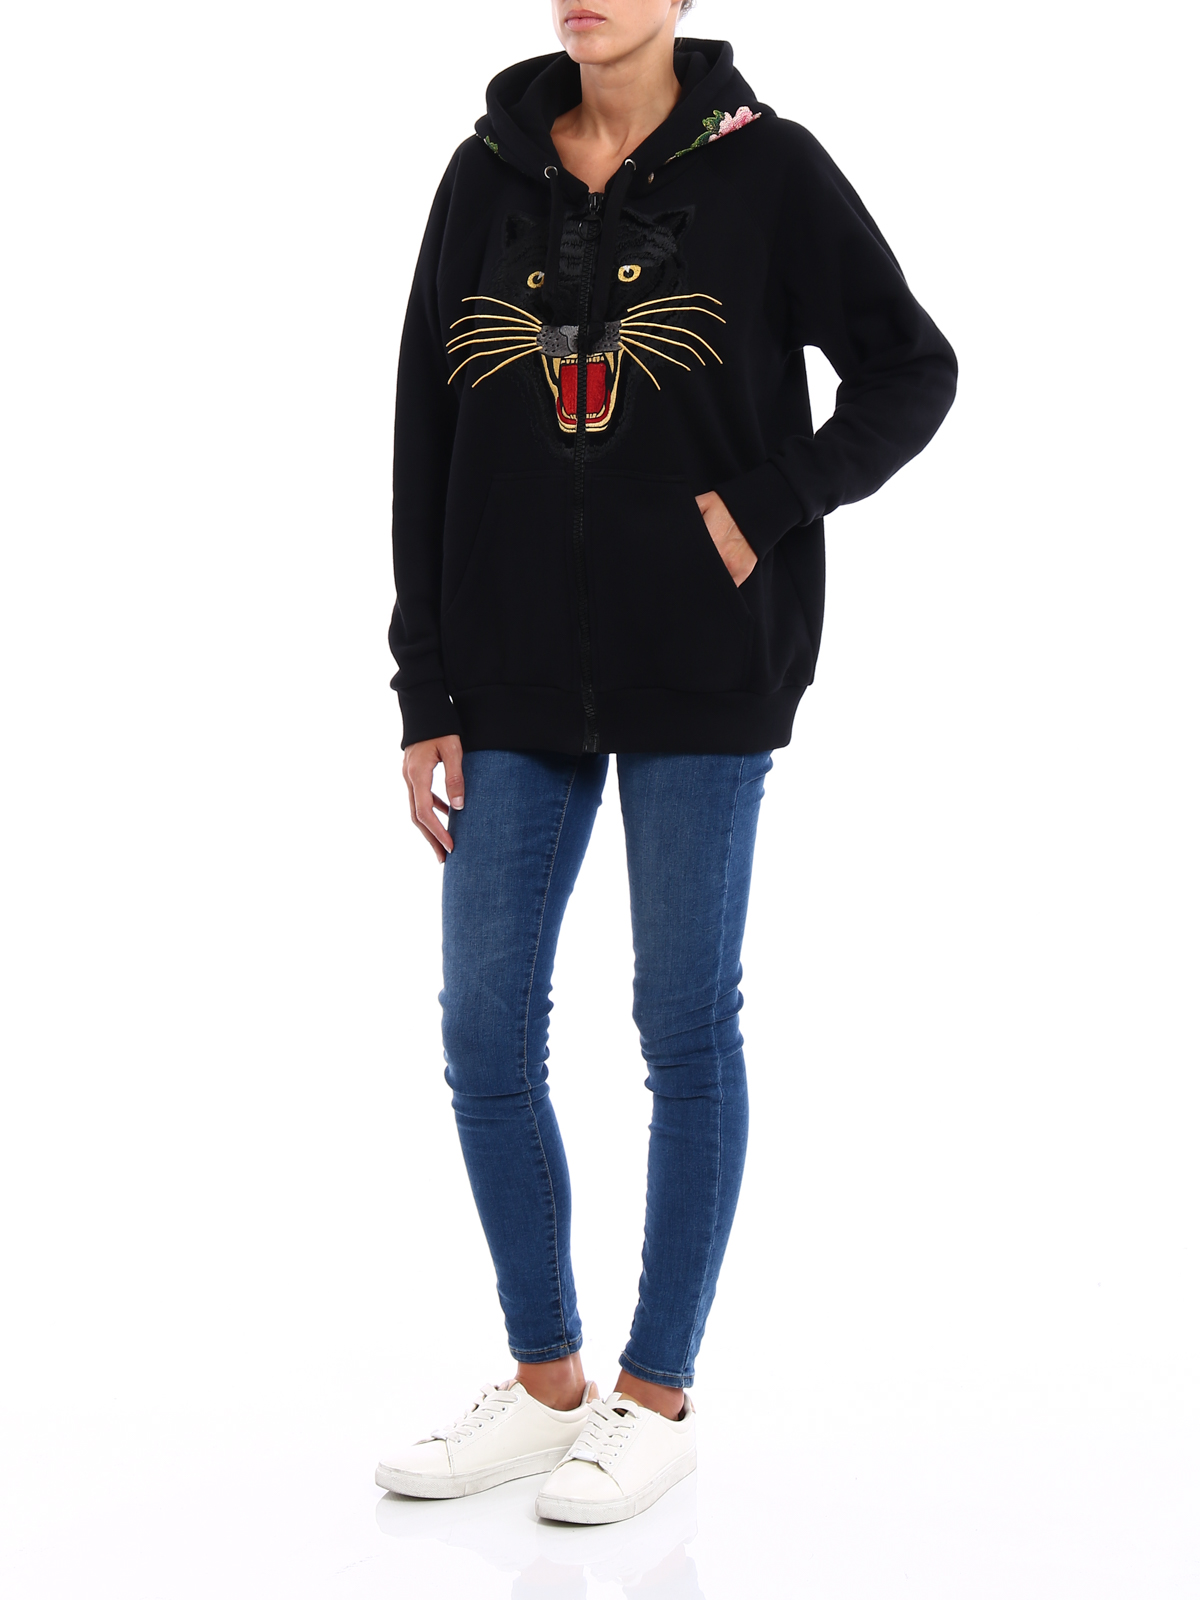 90b4293a6de Gucci - Tiger patch over hoodie - Sweatshirts   Sweaters ...